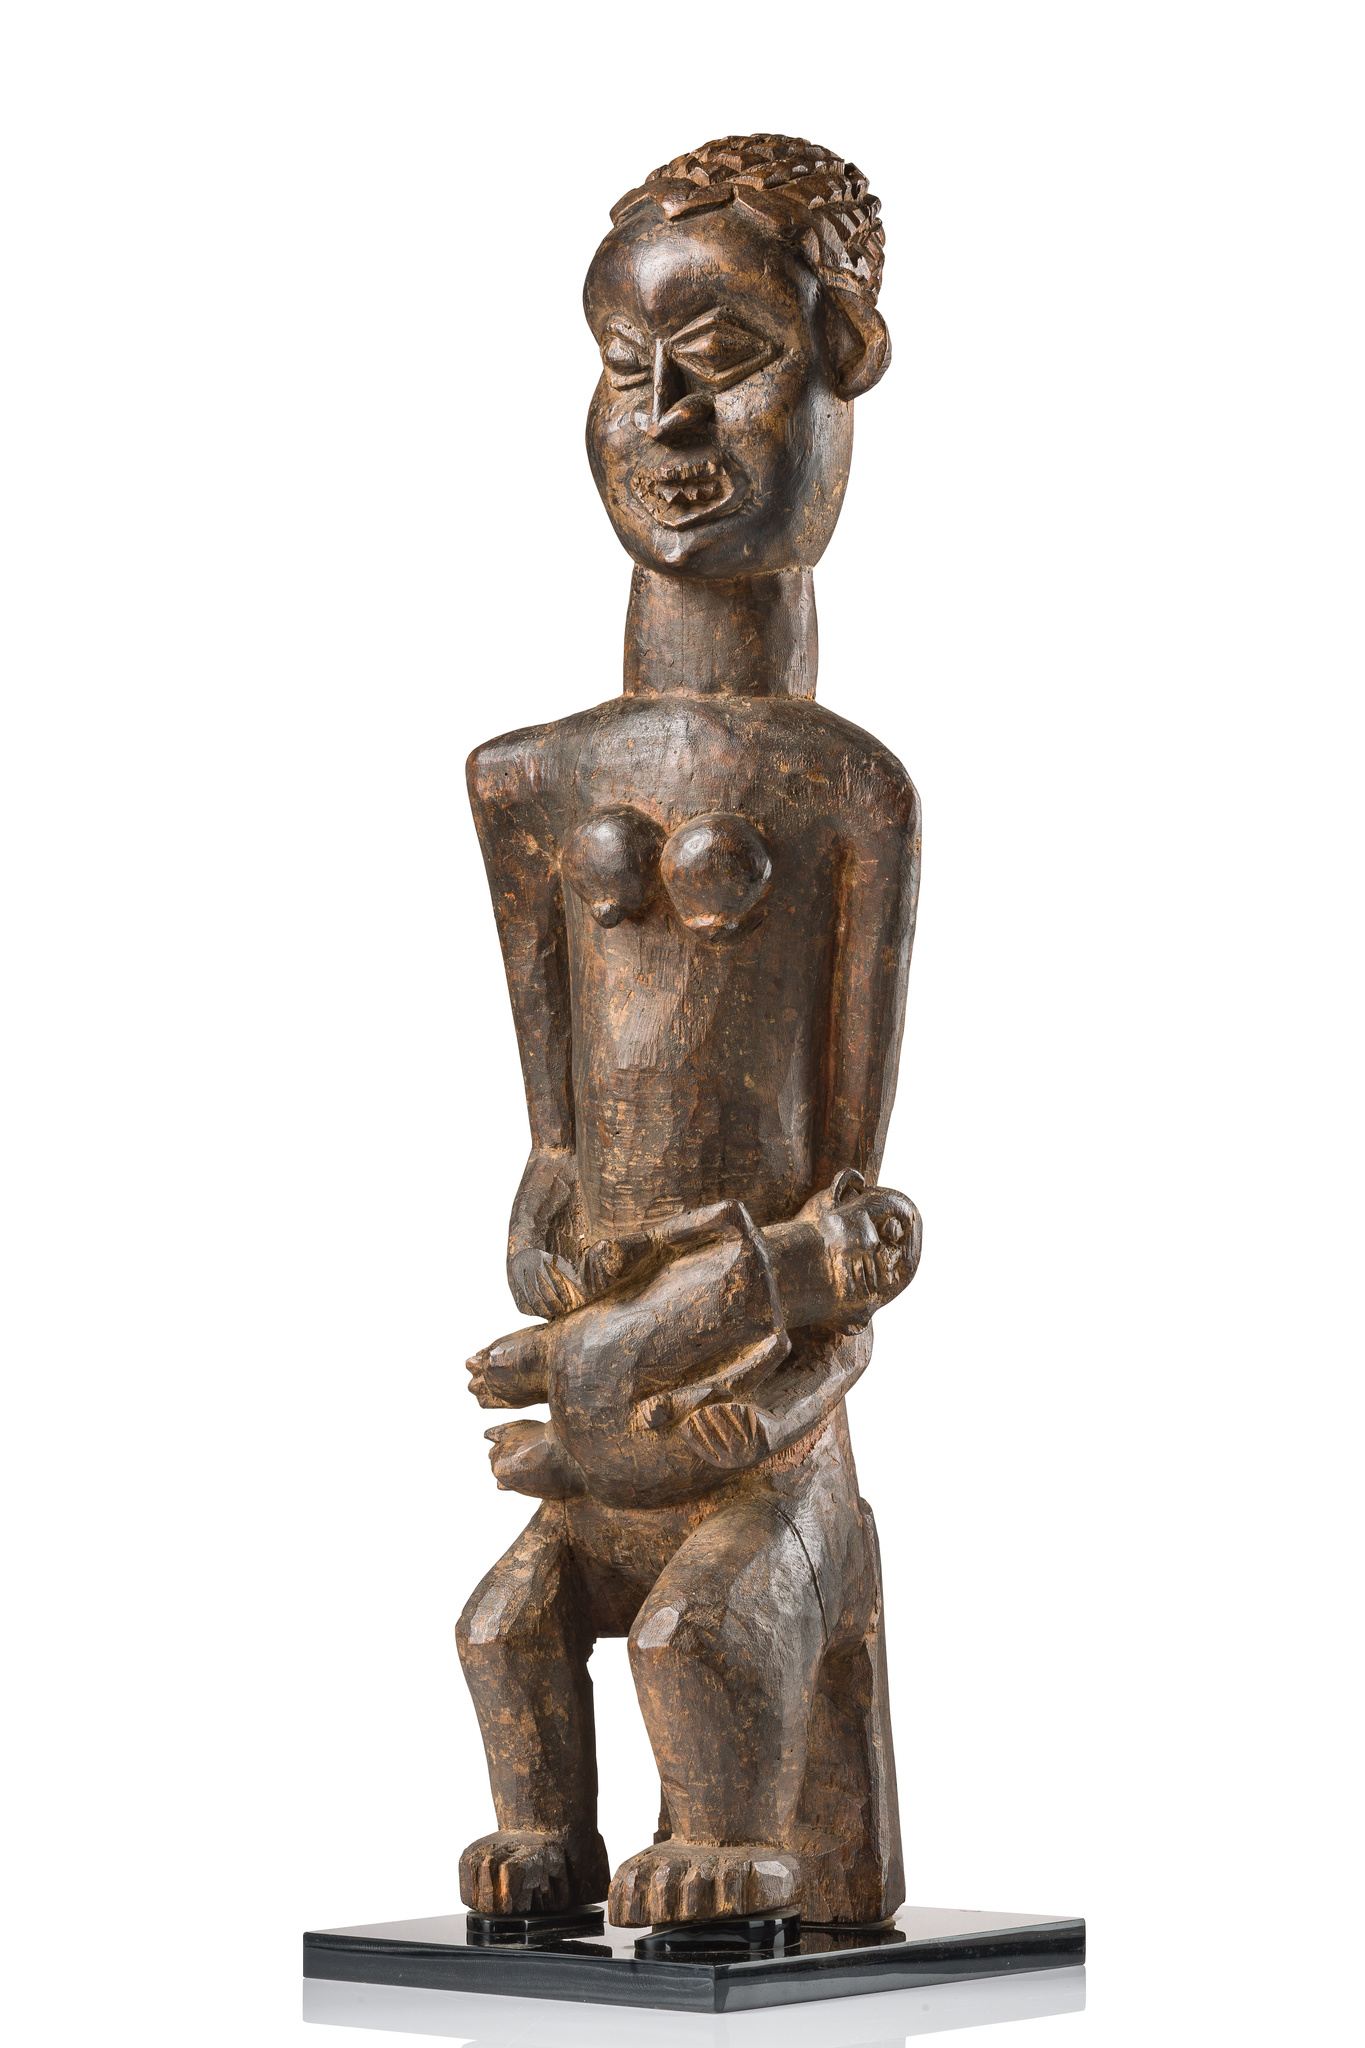 Commemorative maternity figure